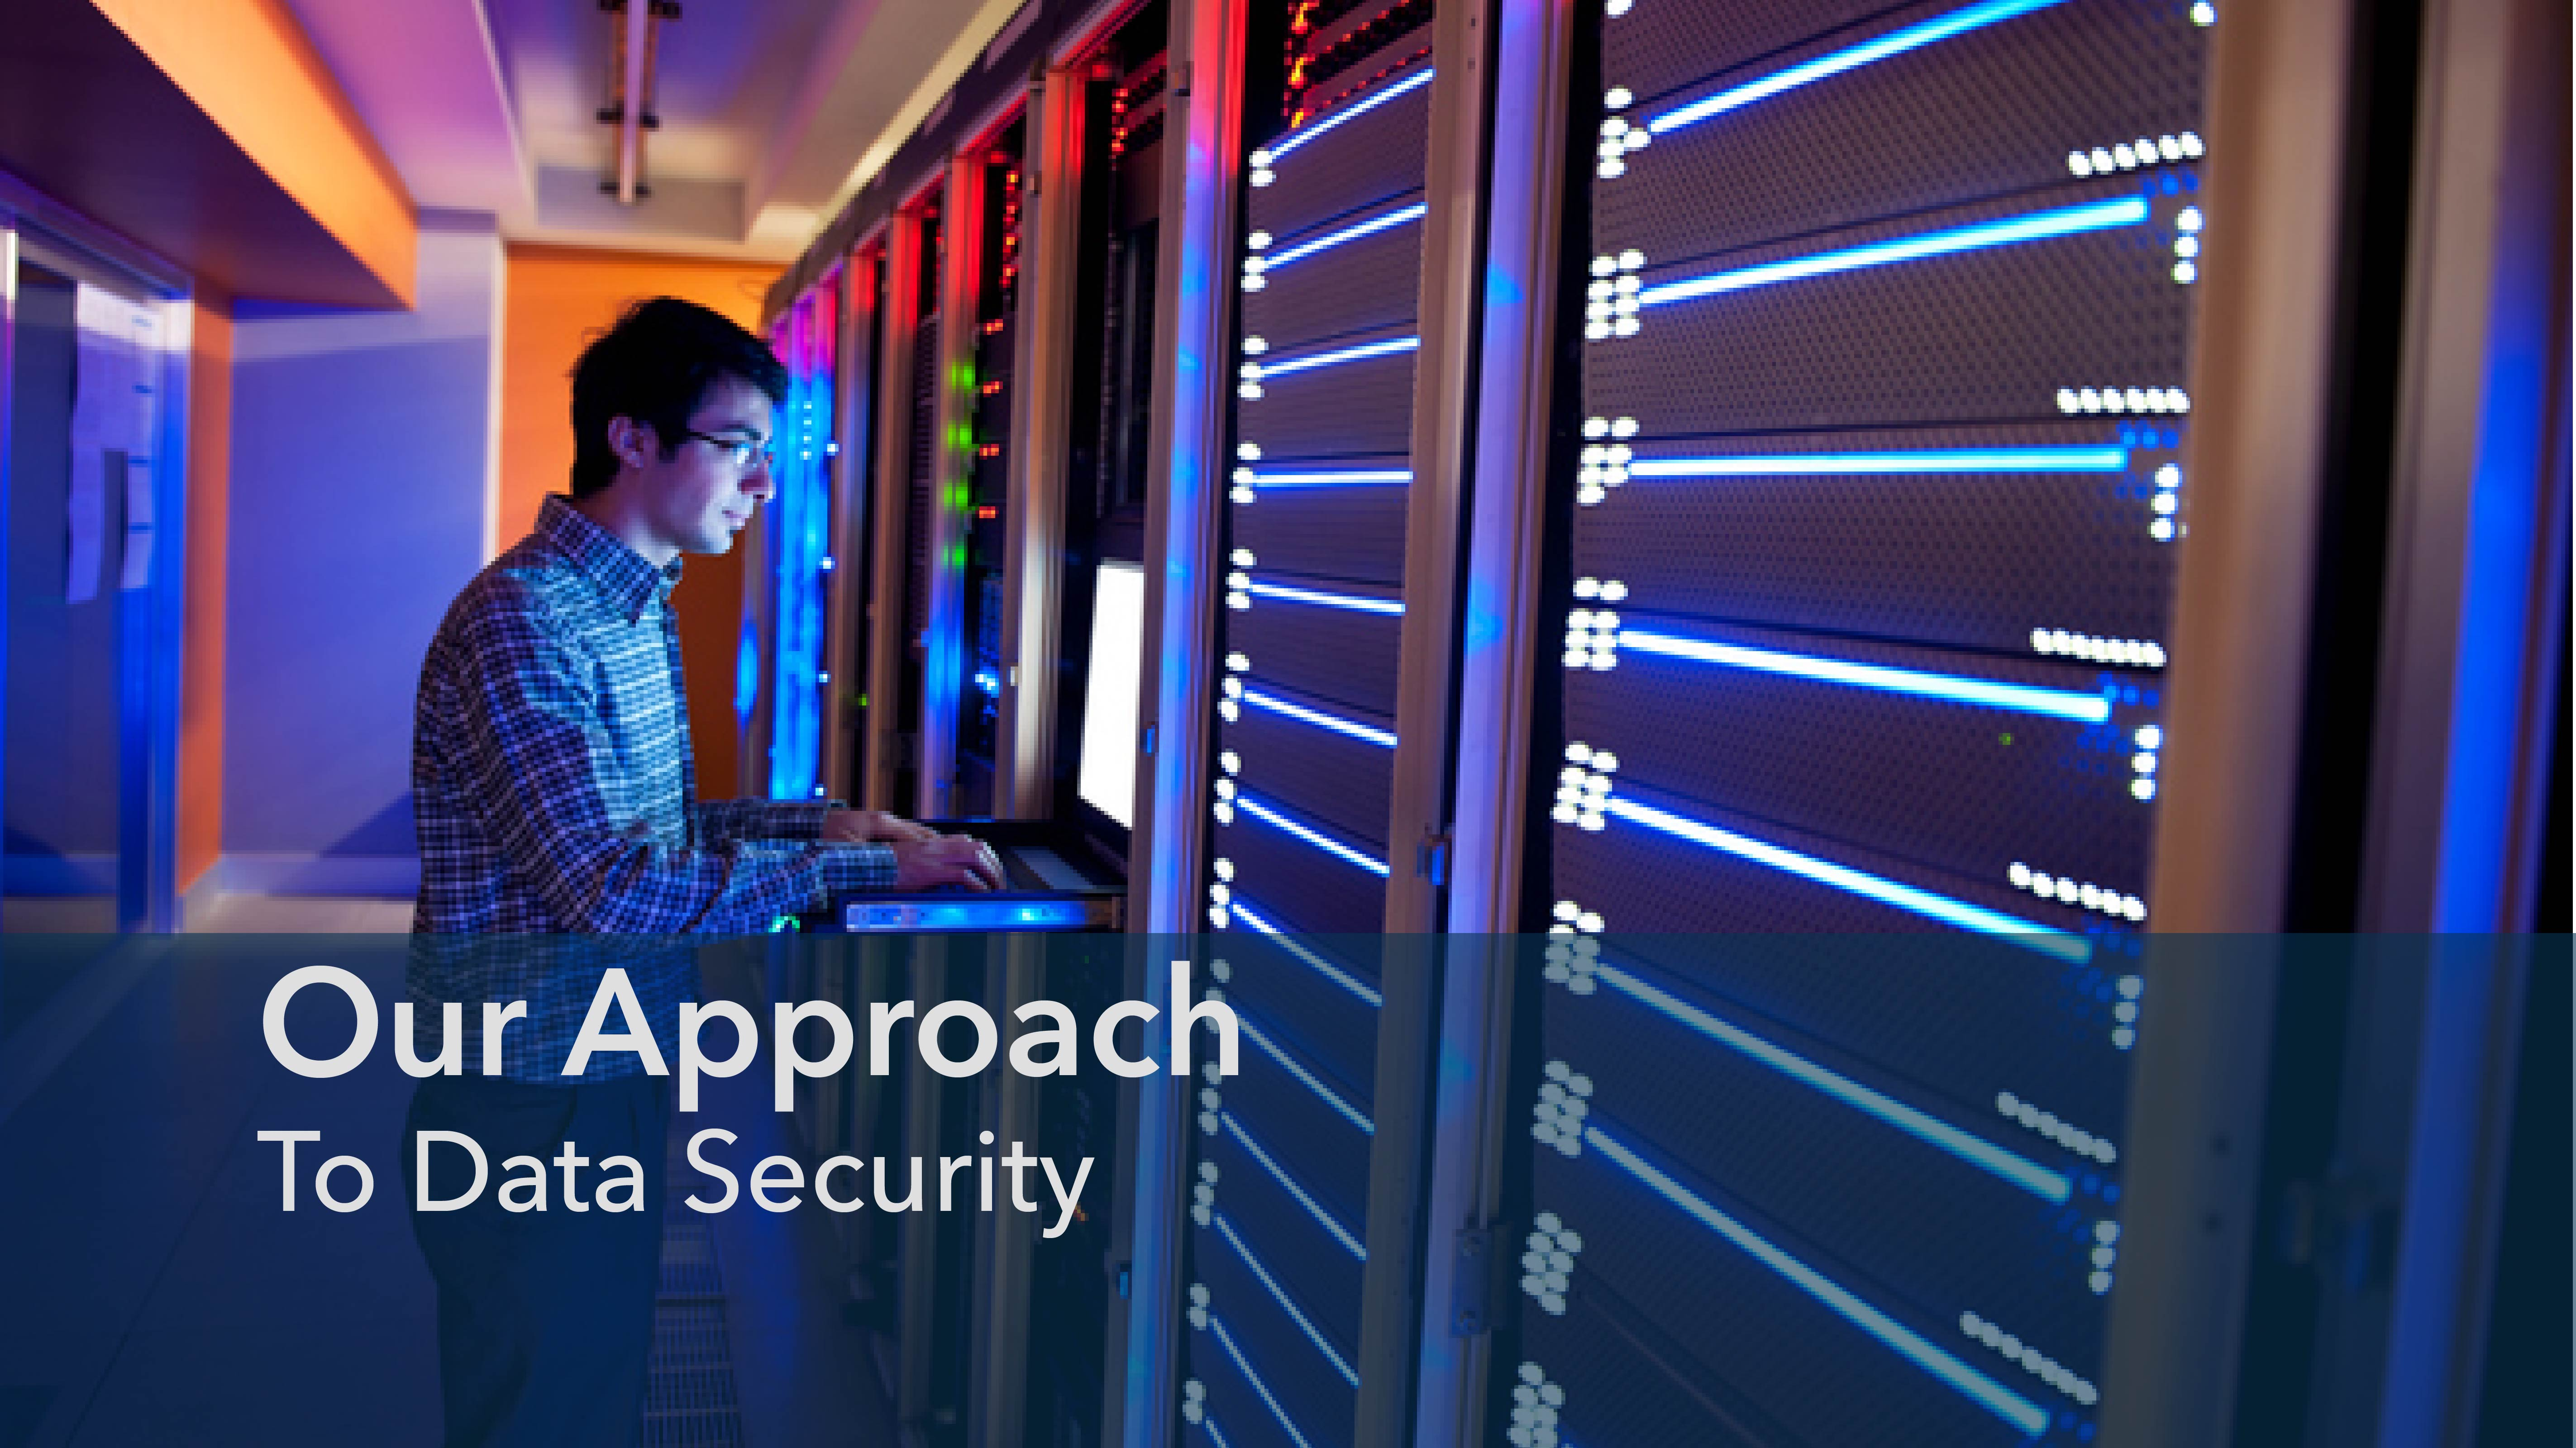 Our Approach to Data Security